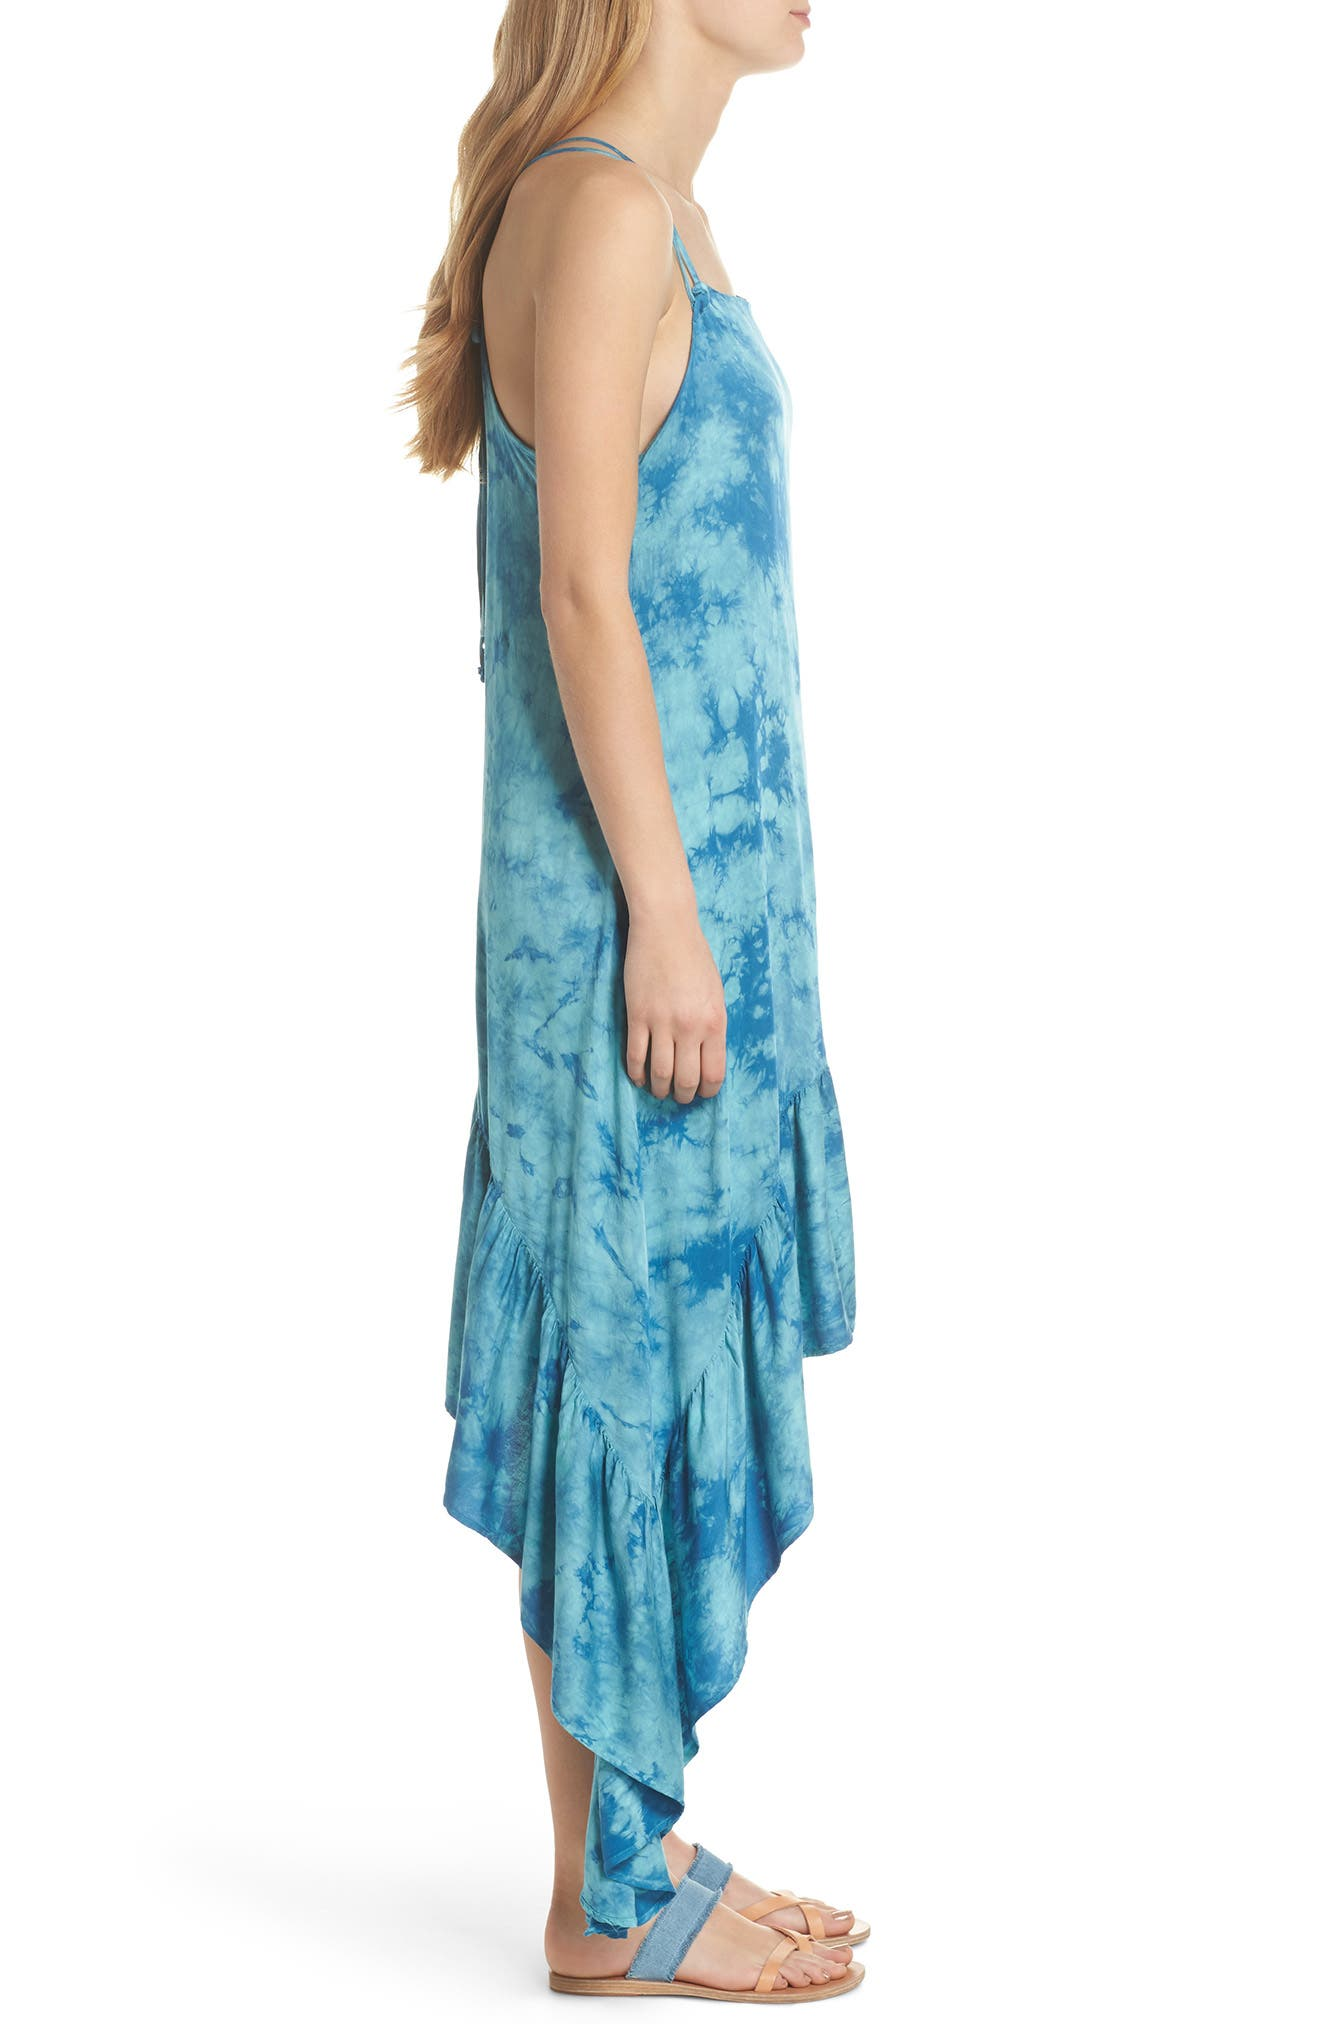 Crystal Forest Clementine Cover-Up Dress,                             Alternate thumbnail 3, color,                             401